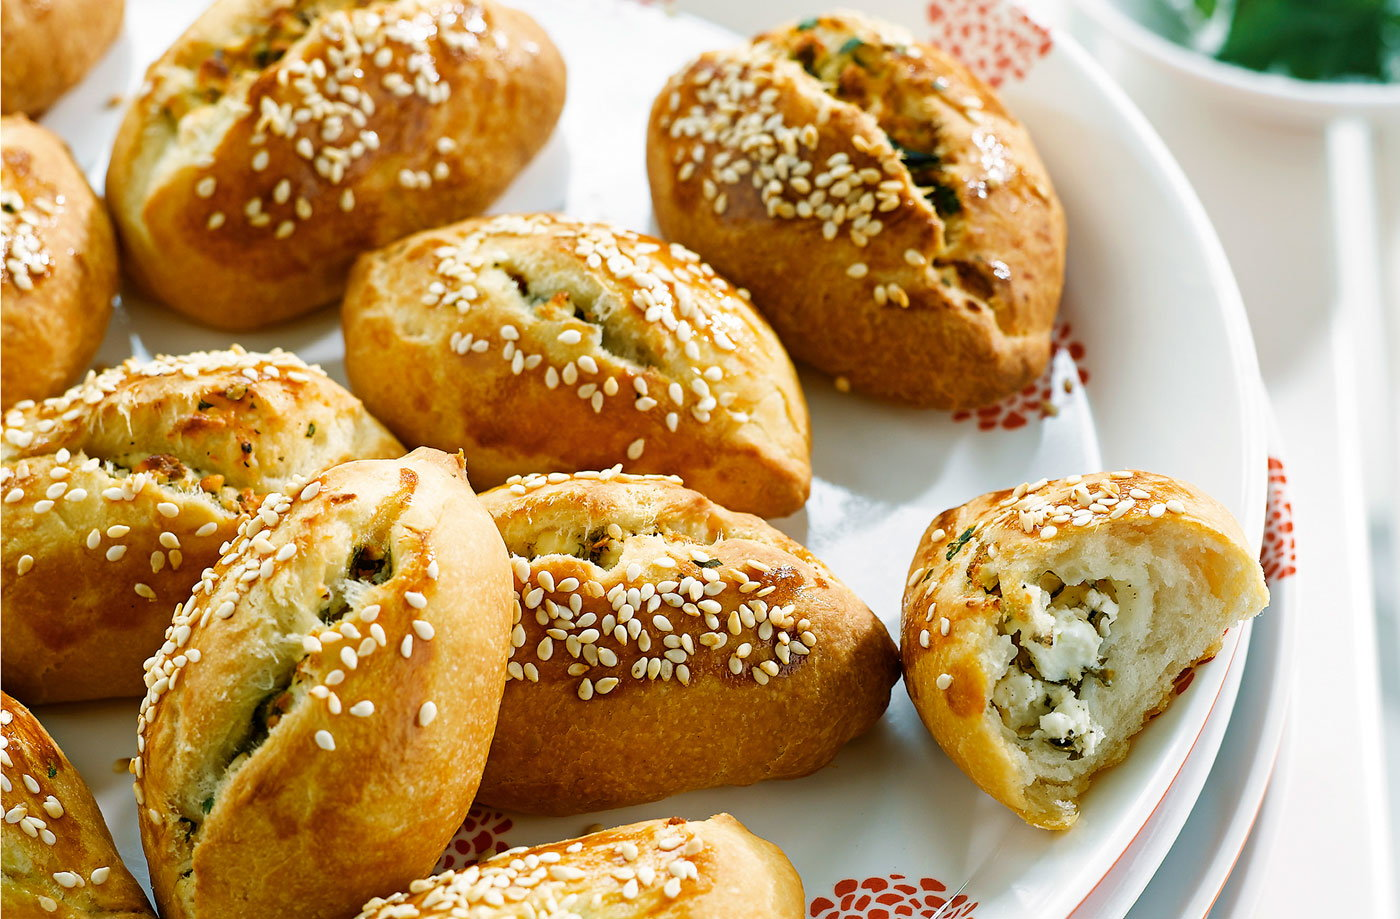 Pirojki – Turkish bread